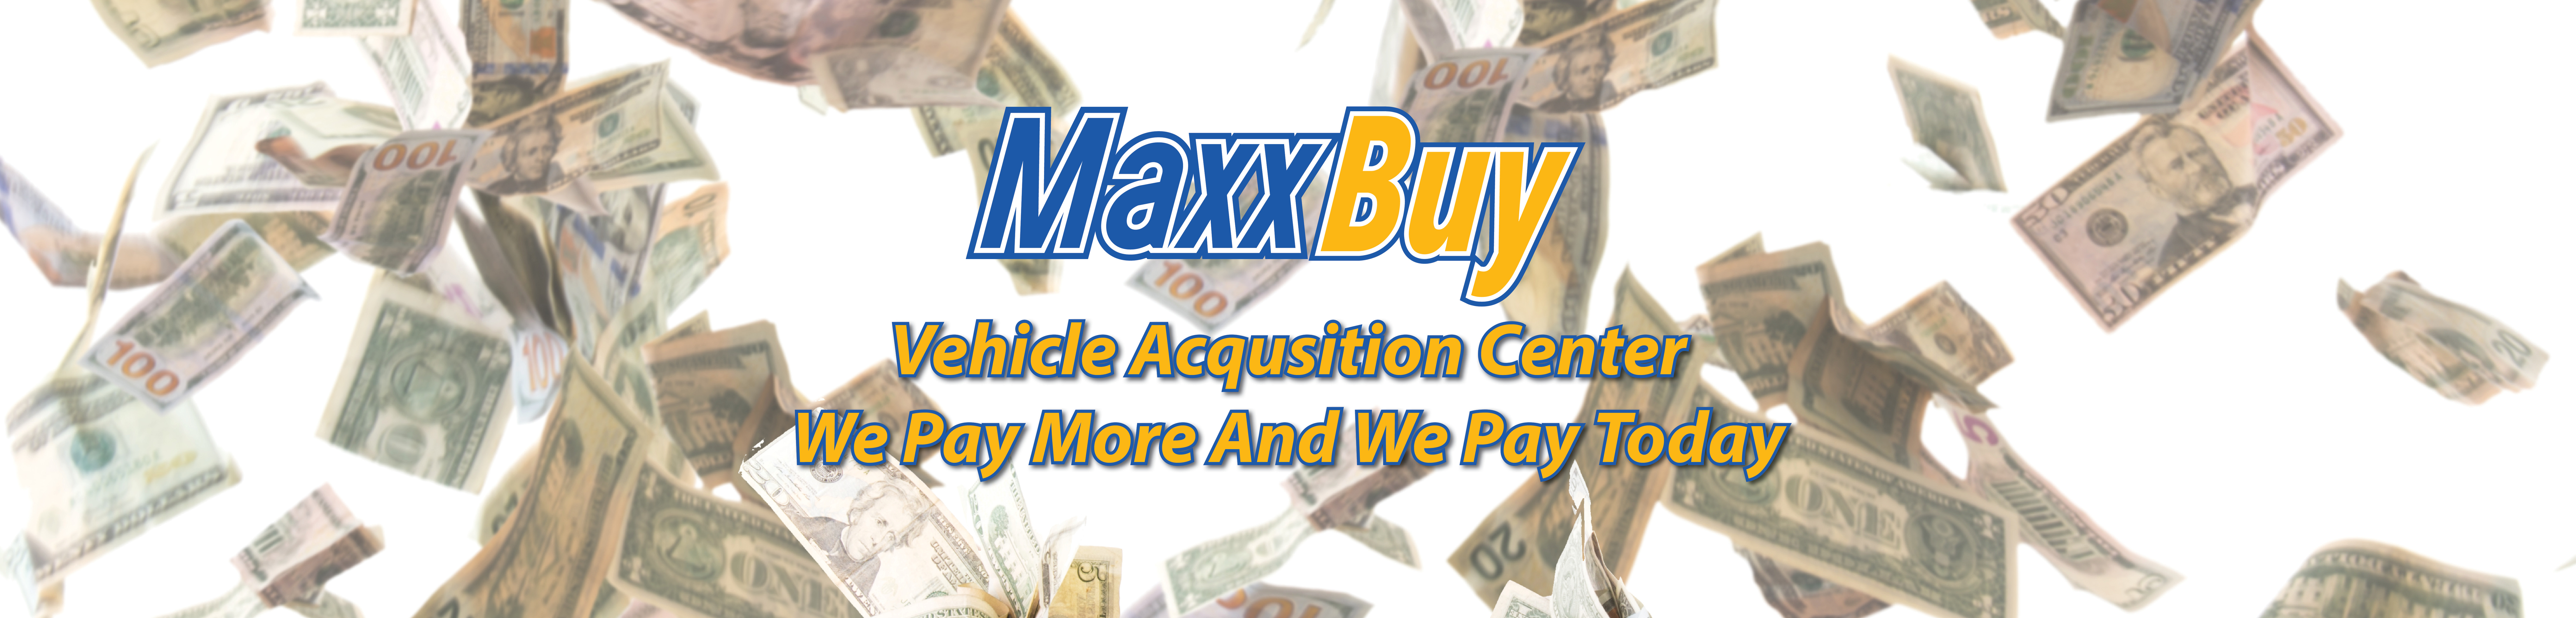 Maxx Buy Vehicle Acquisition